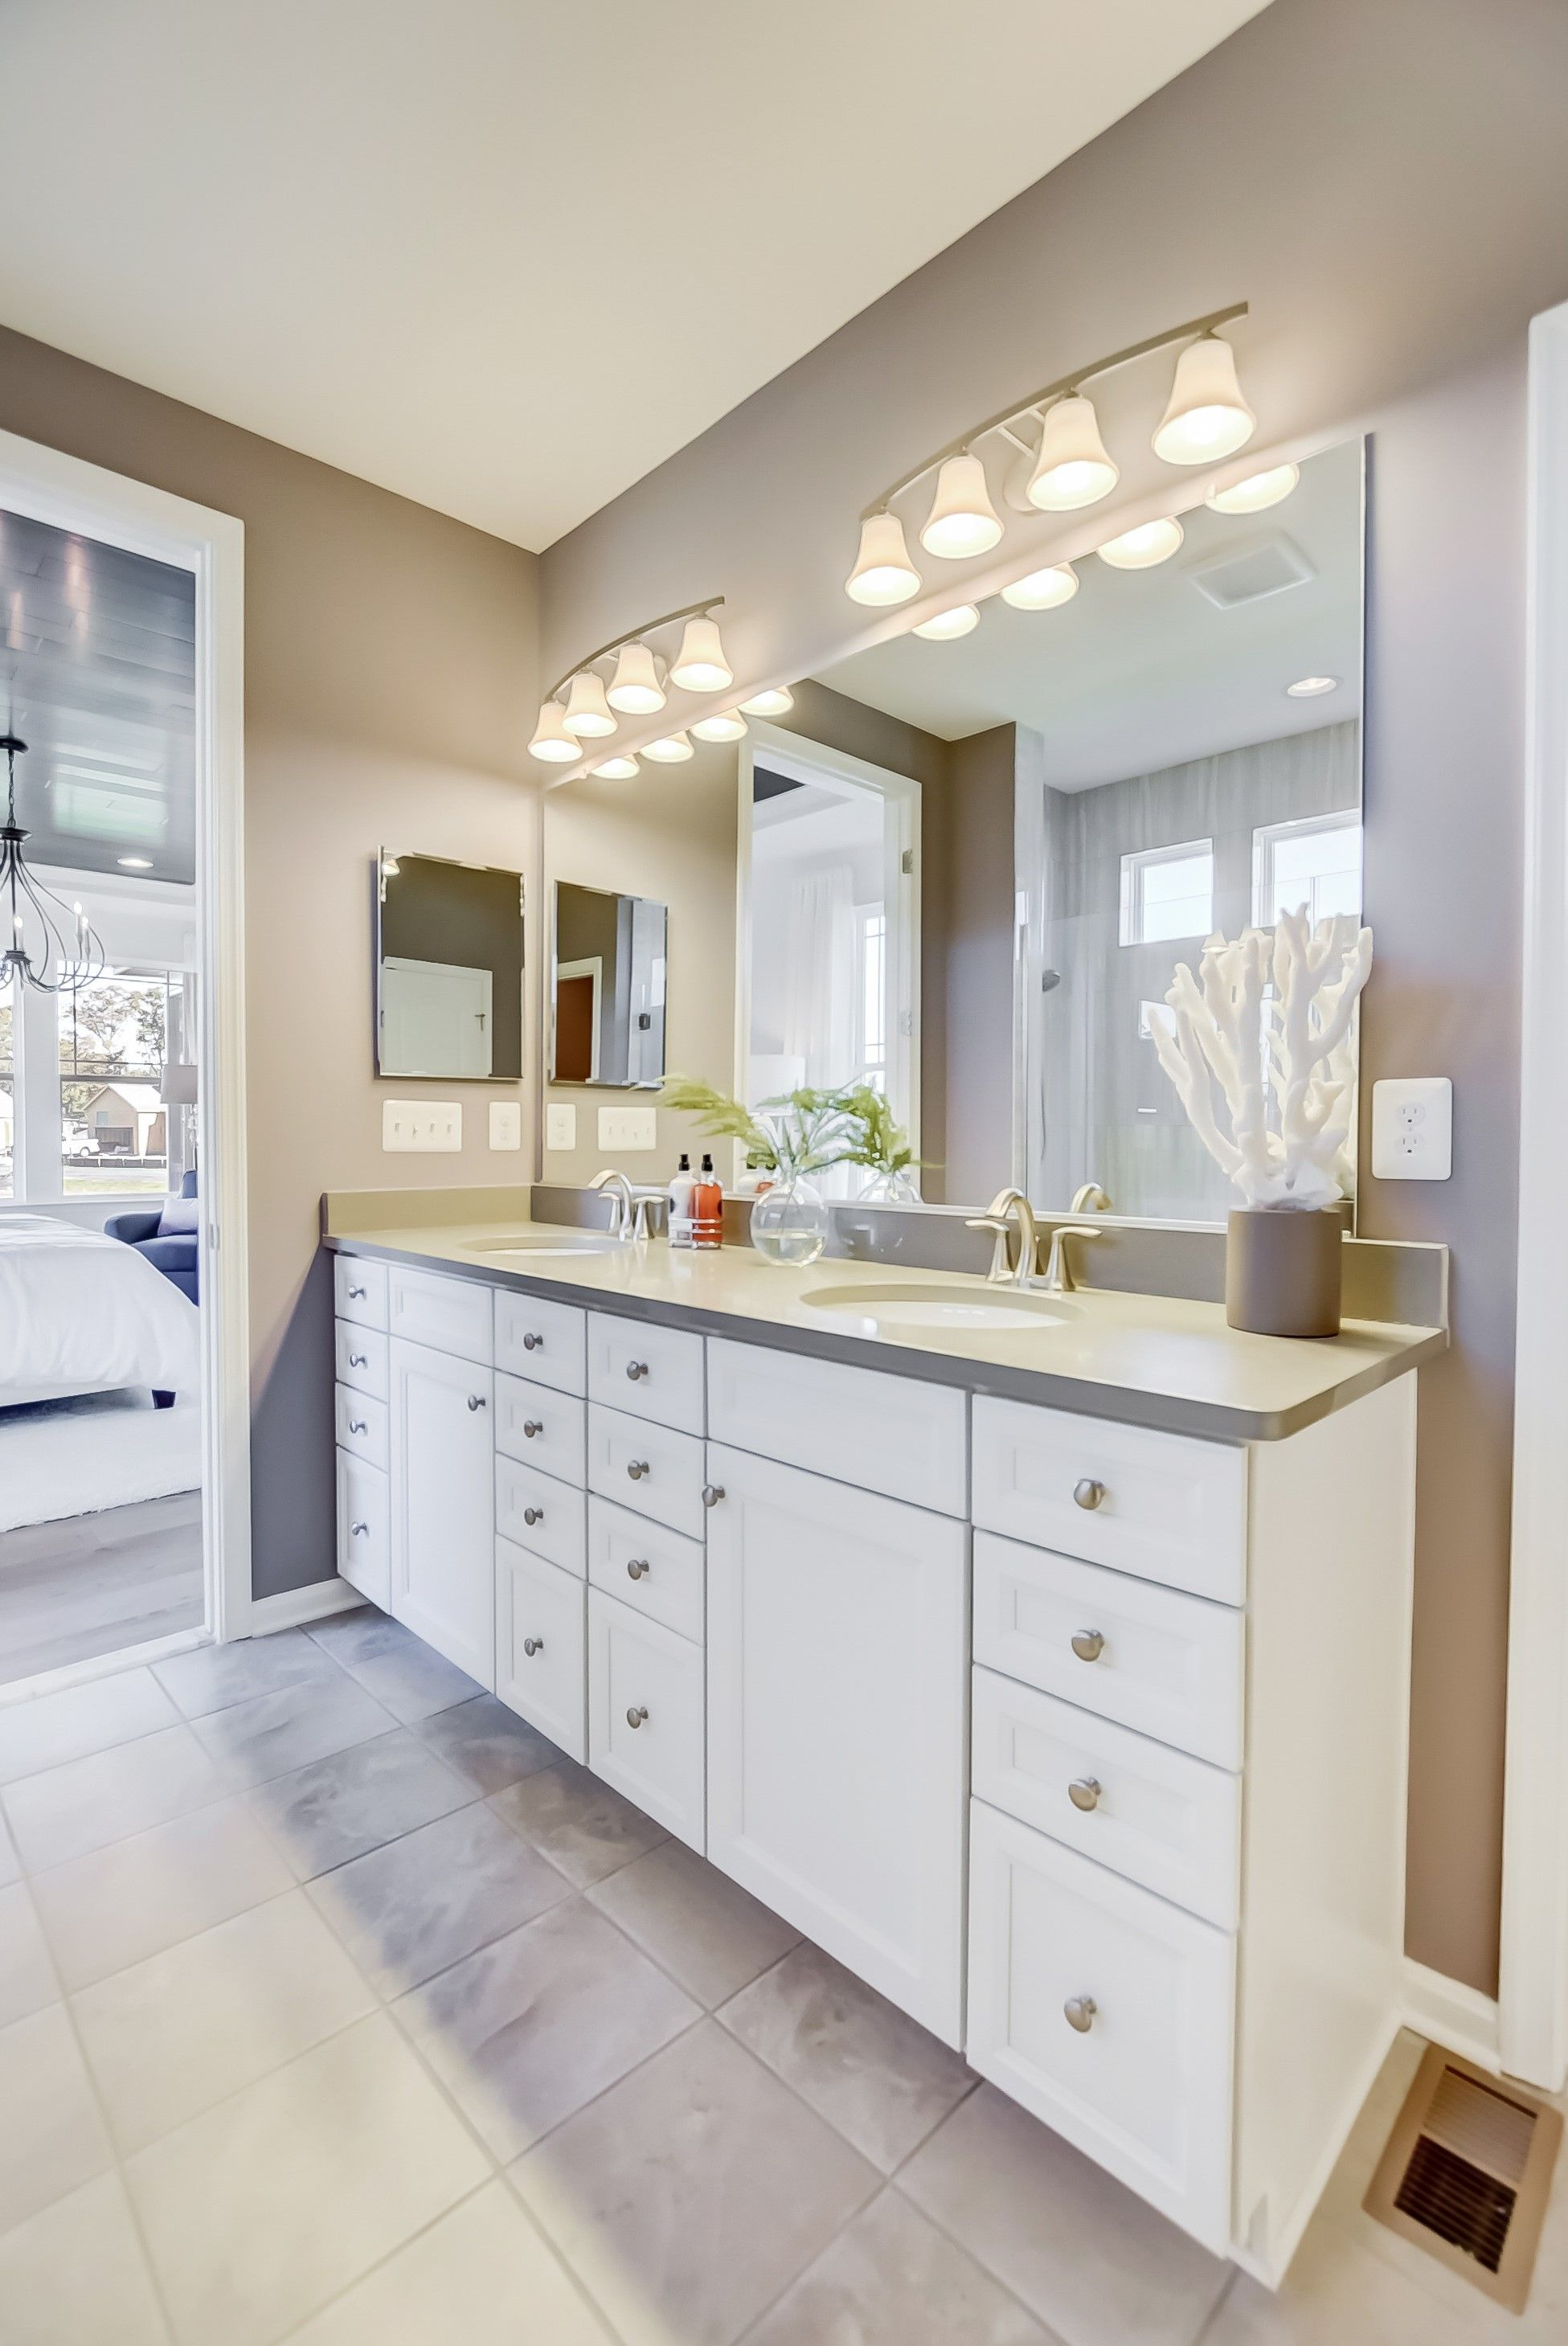 Bathroom featured in the St Michaels By K. Hovnanian® Homes in Sussex, DE